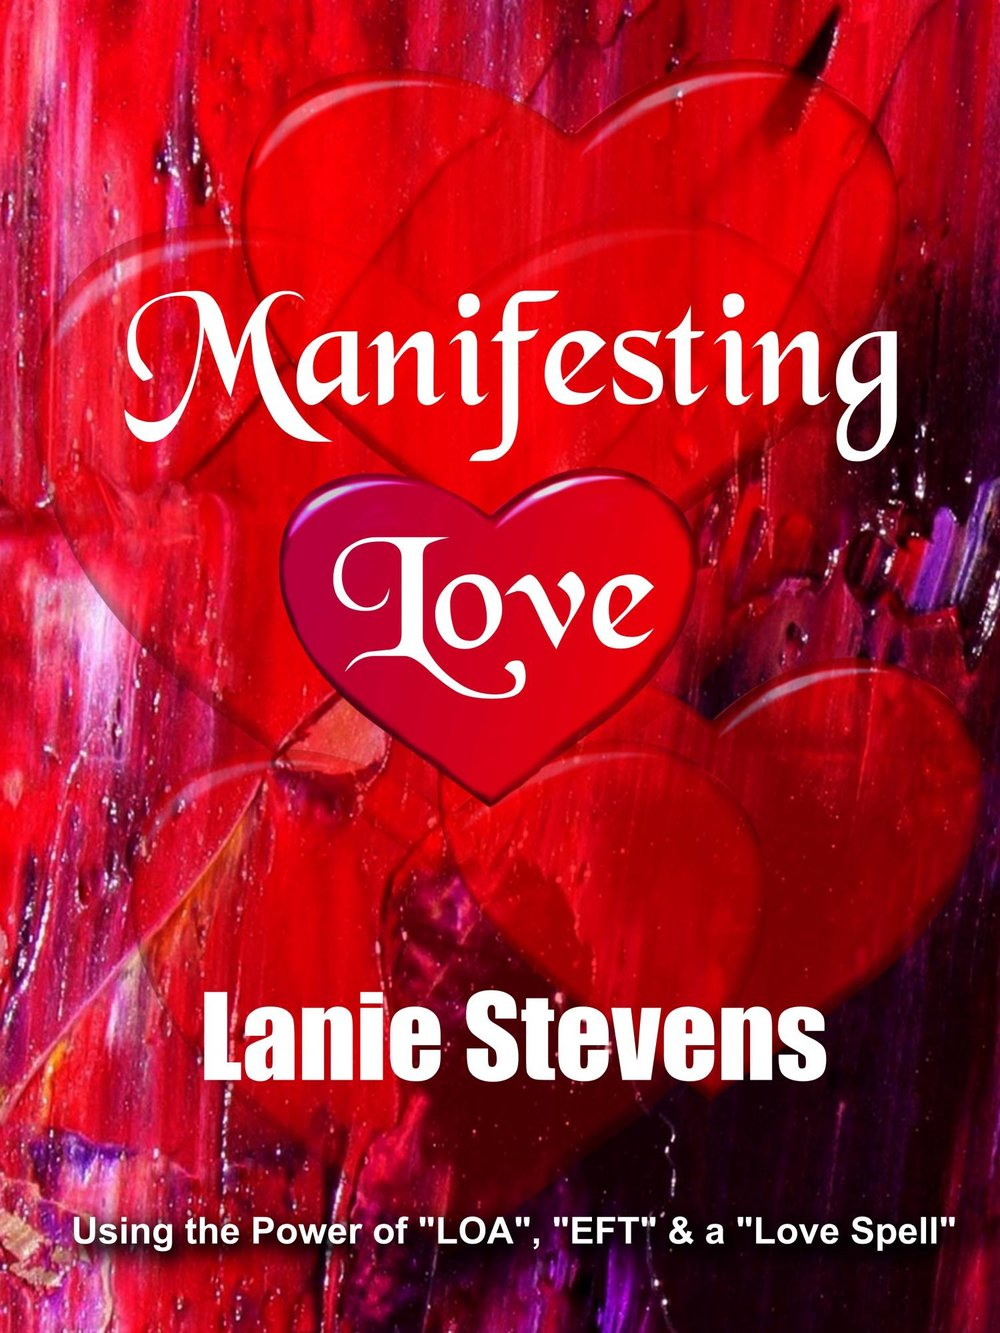 Learn to Manifest Love - with a powerful LOVE SPELL!